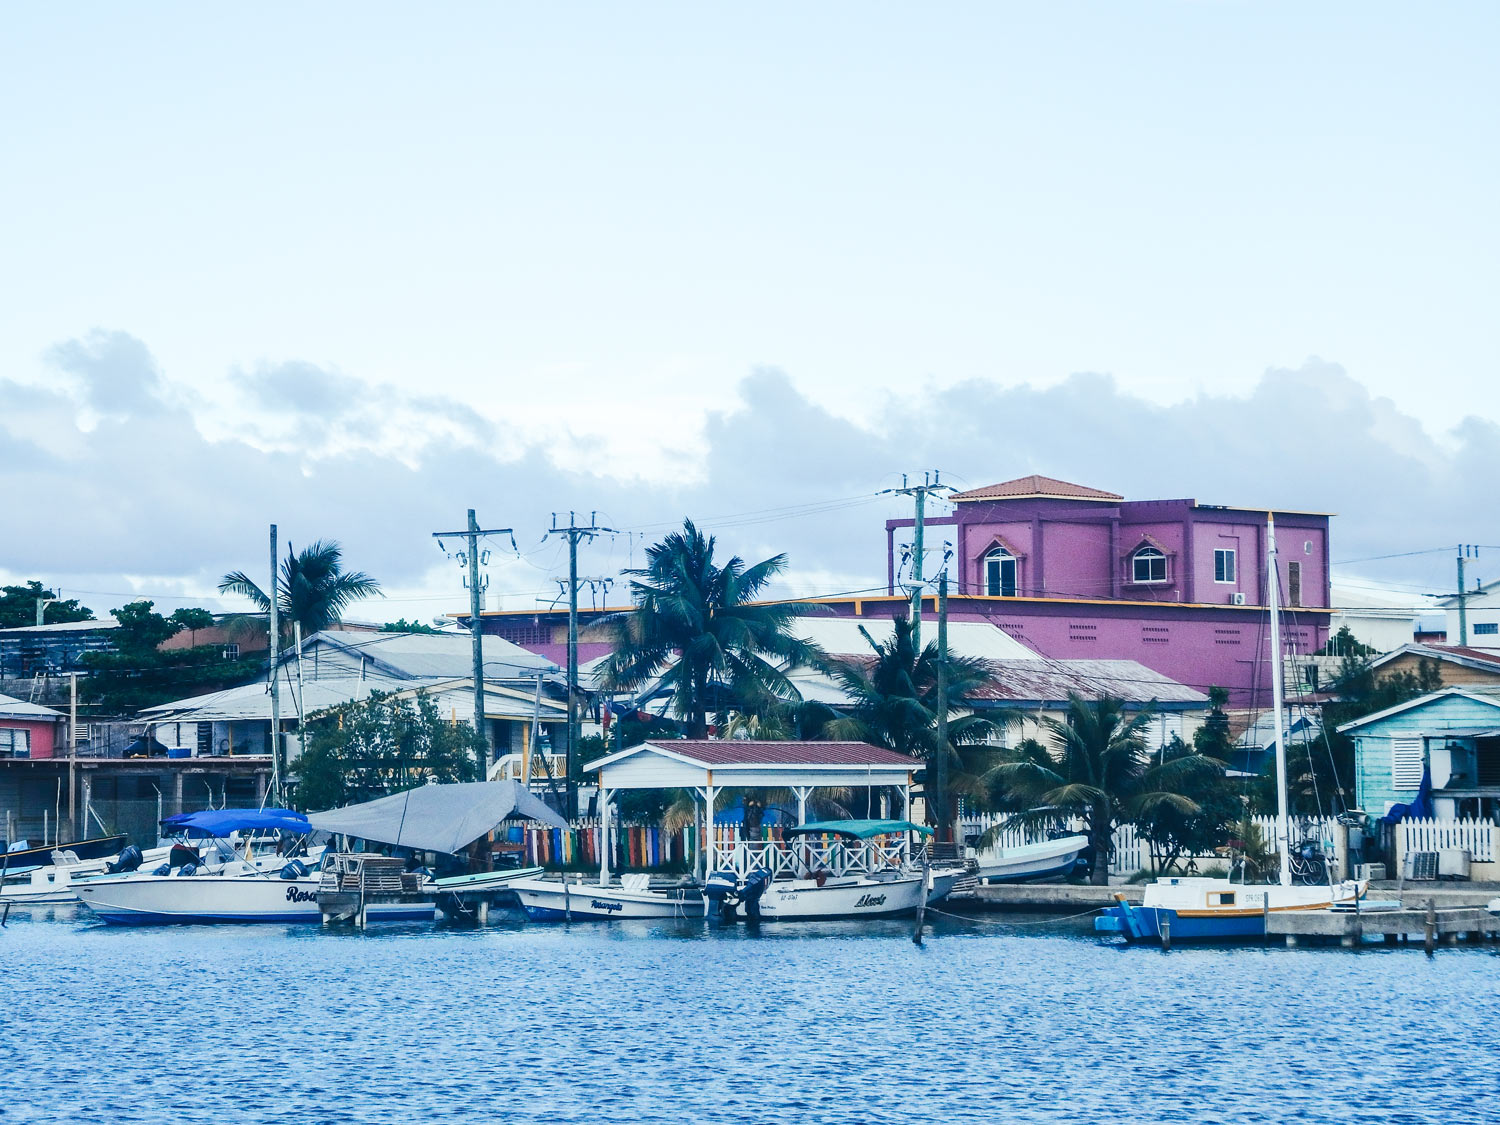 Travelling Caye Caulker the tropical paradise. A view of a pink building on the island water whilst arriving from the boat